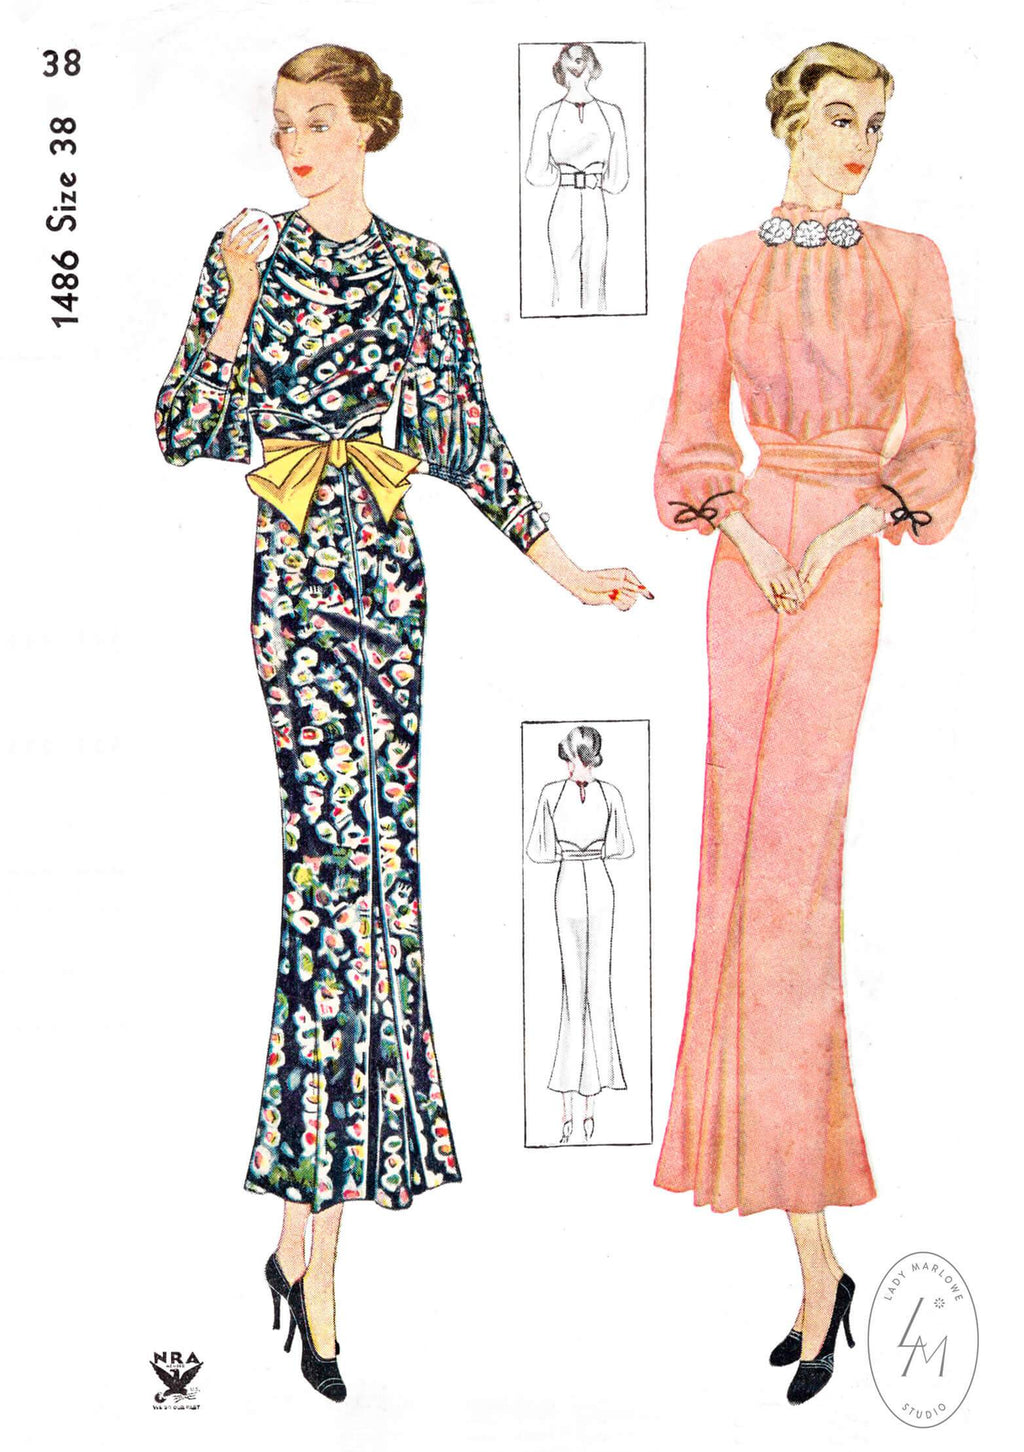 Simplicity 1486 1930s 1934 art deco day dress draped neckline vintage sewing pattern reproduction